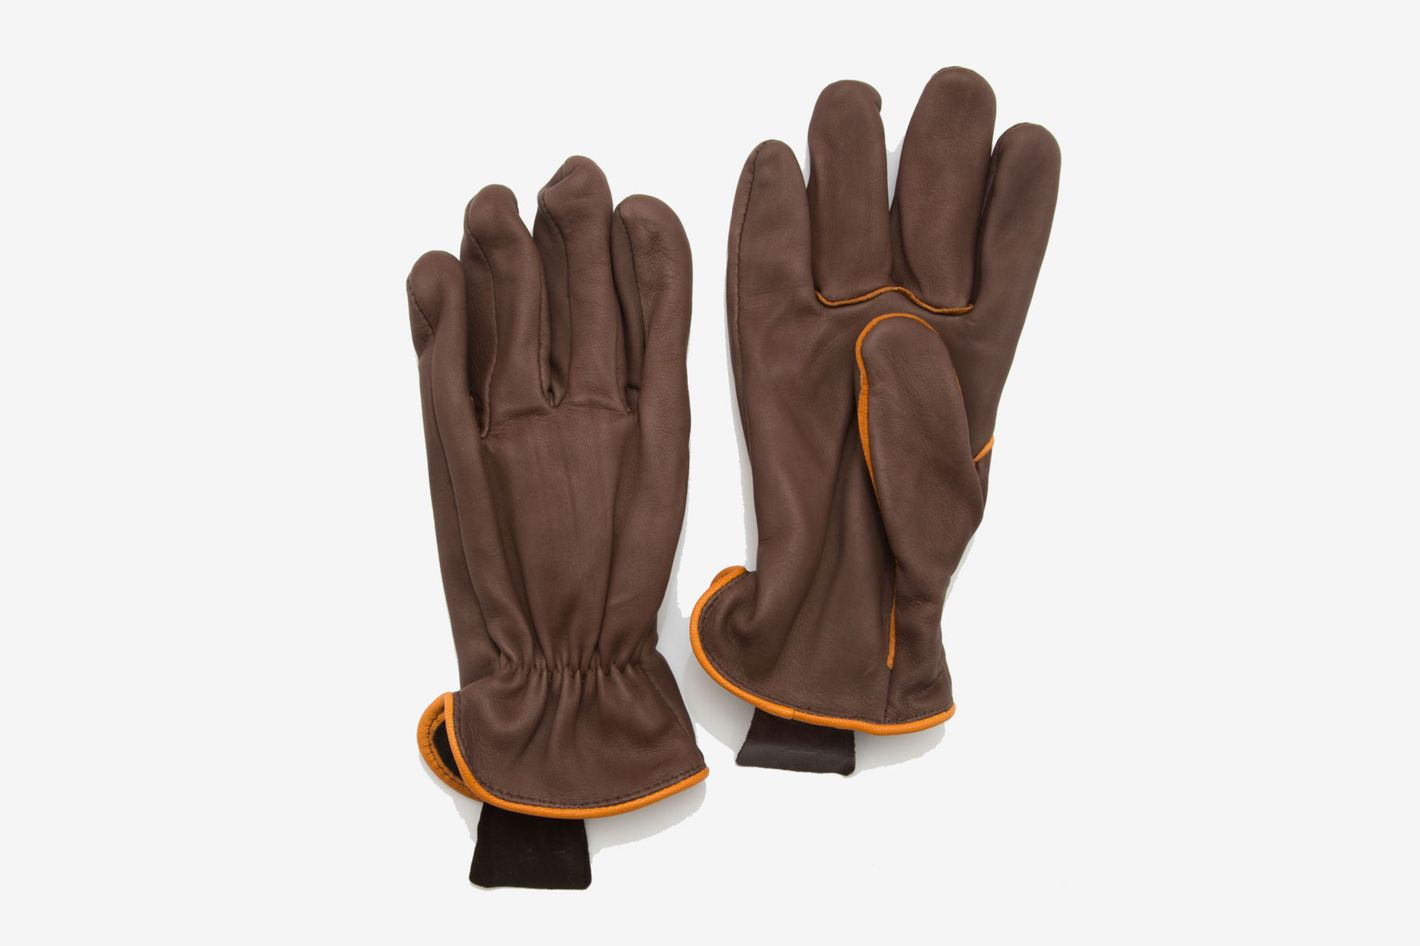 Geier Glove Light Lined Deerskin Work Glove